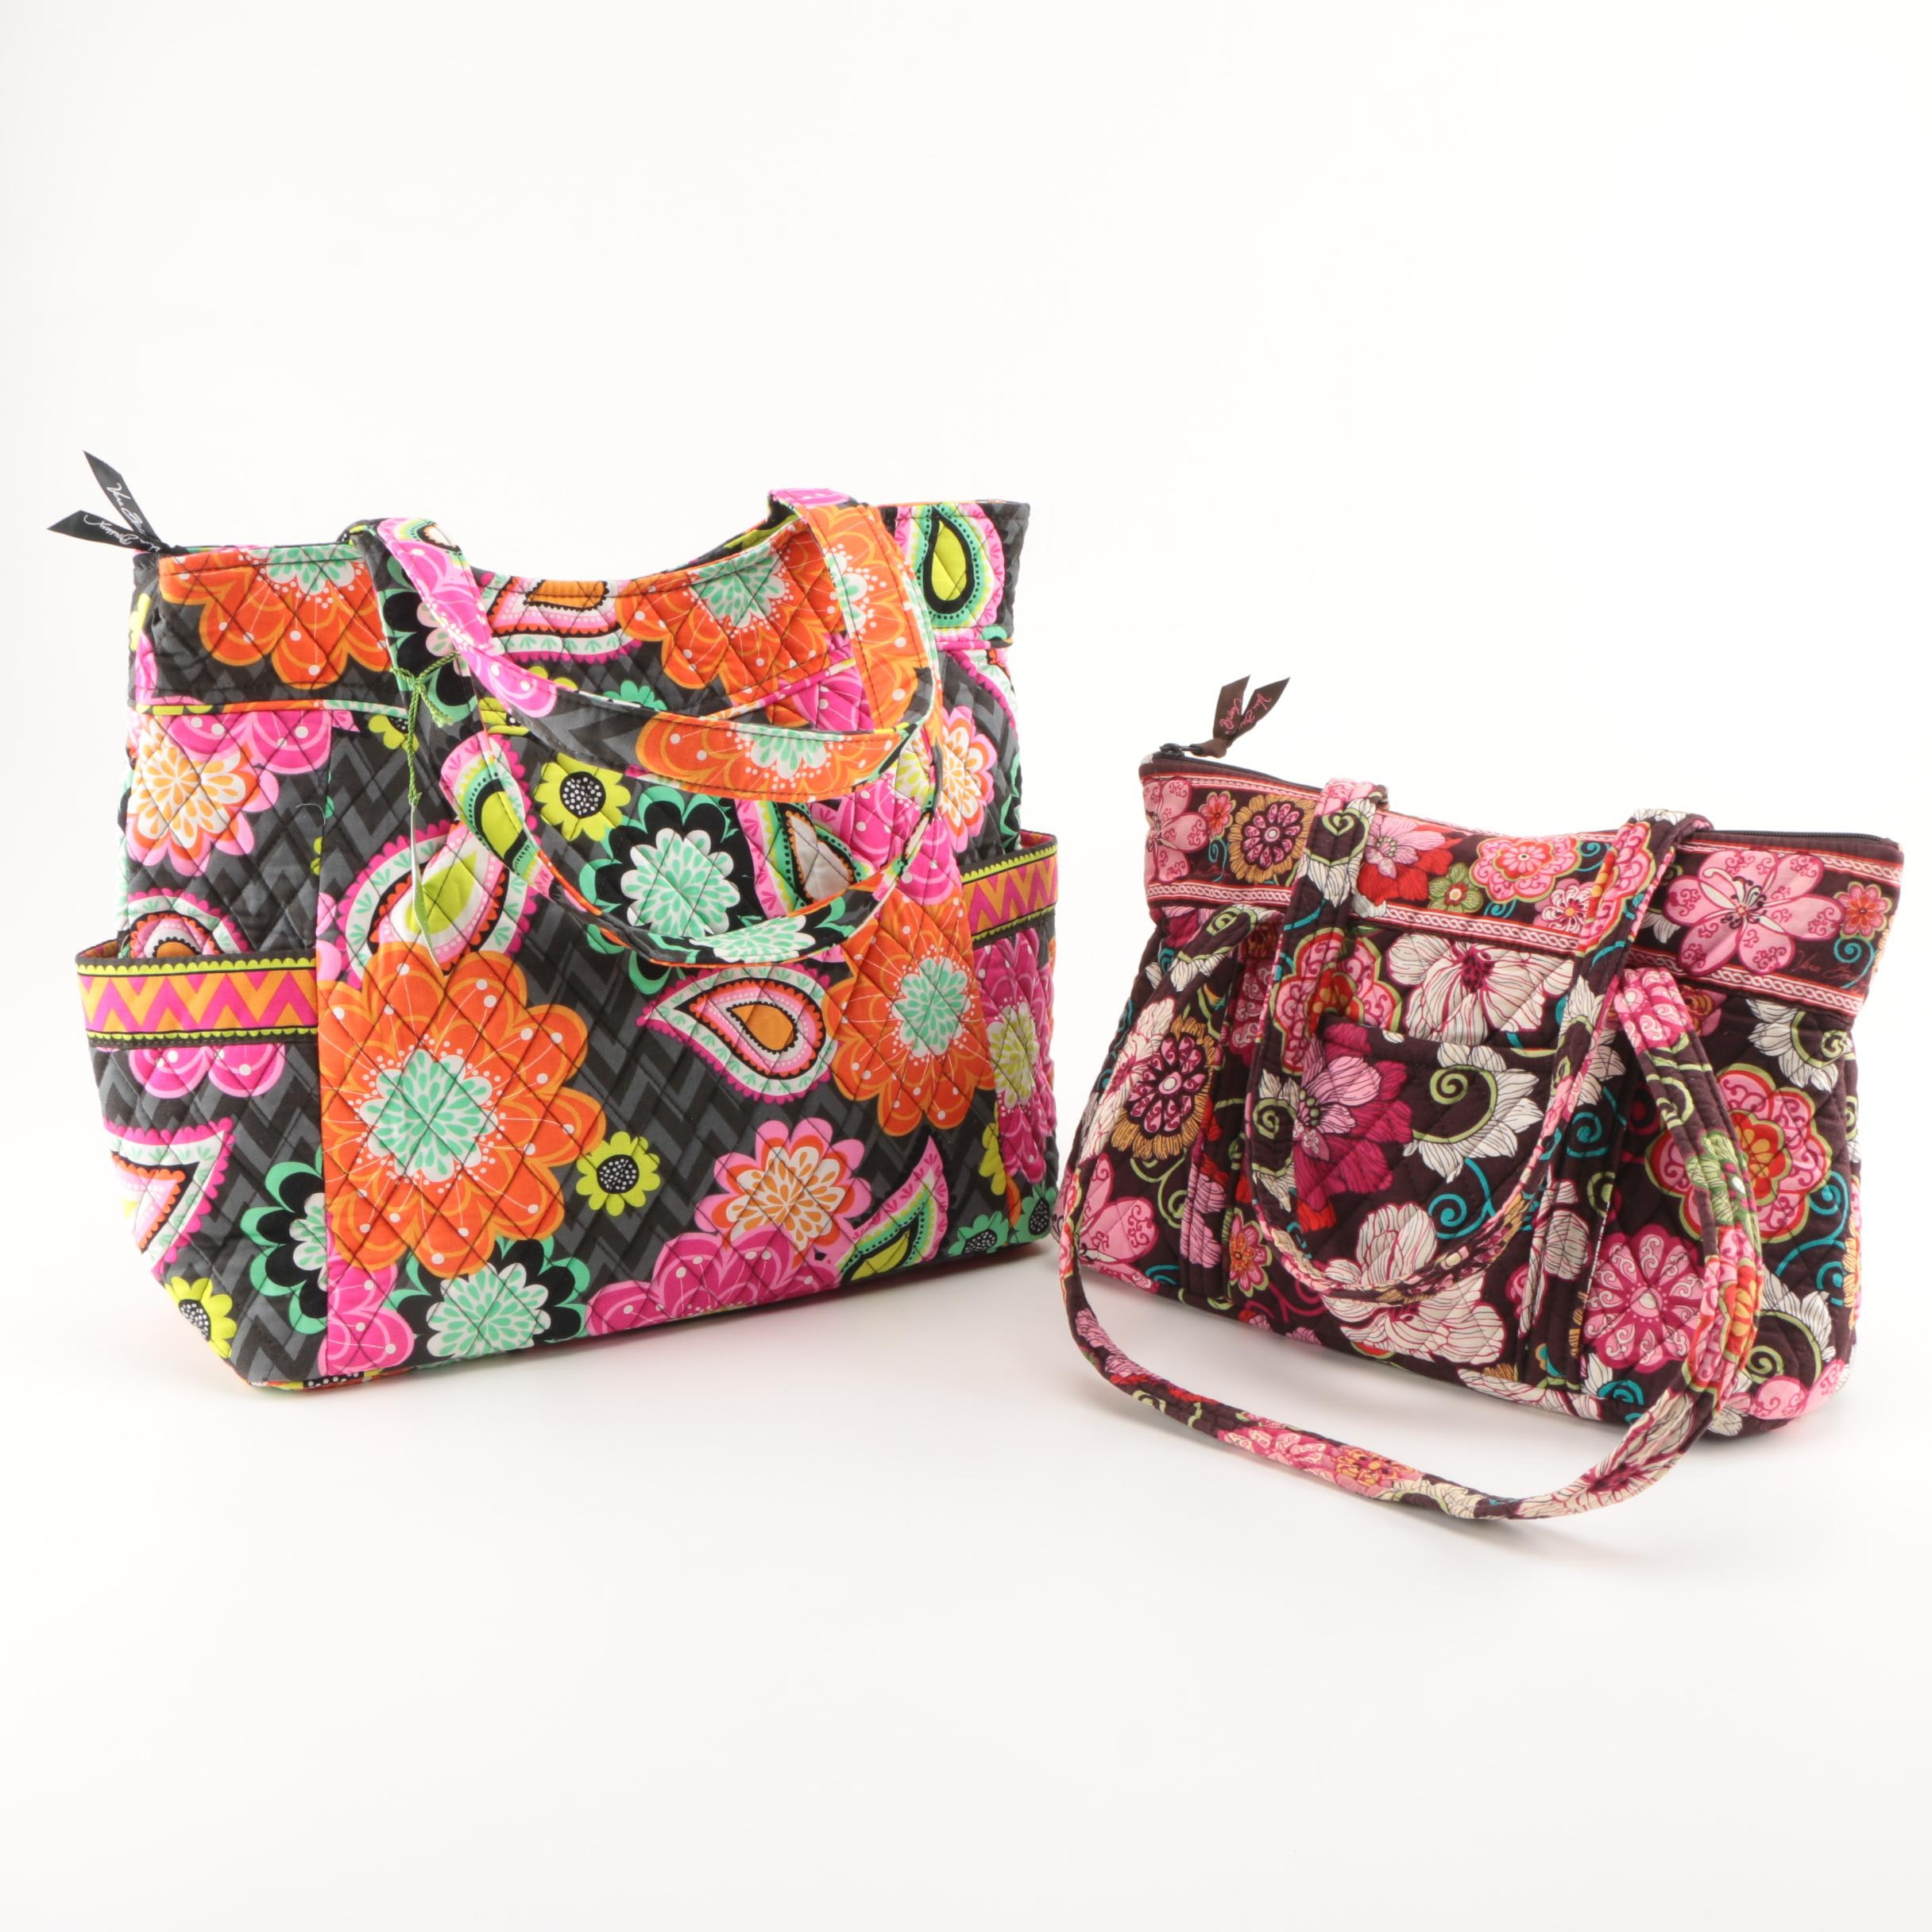 Vera Bradley Quilted Totes